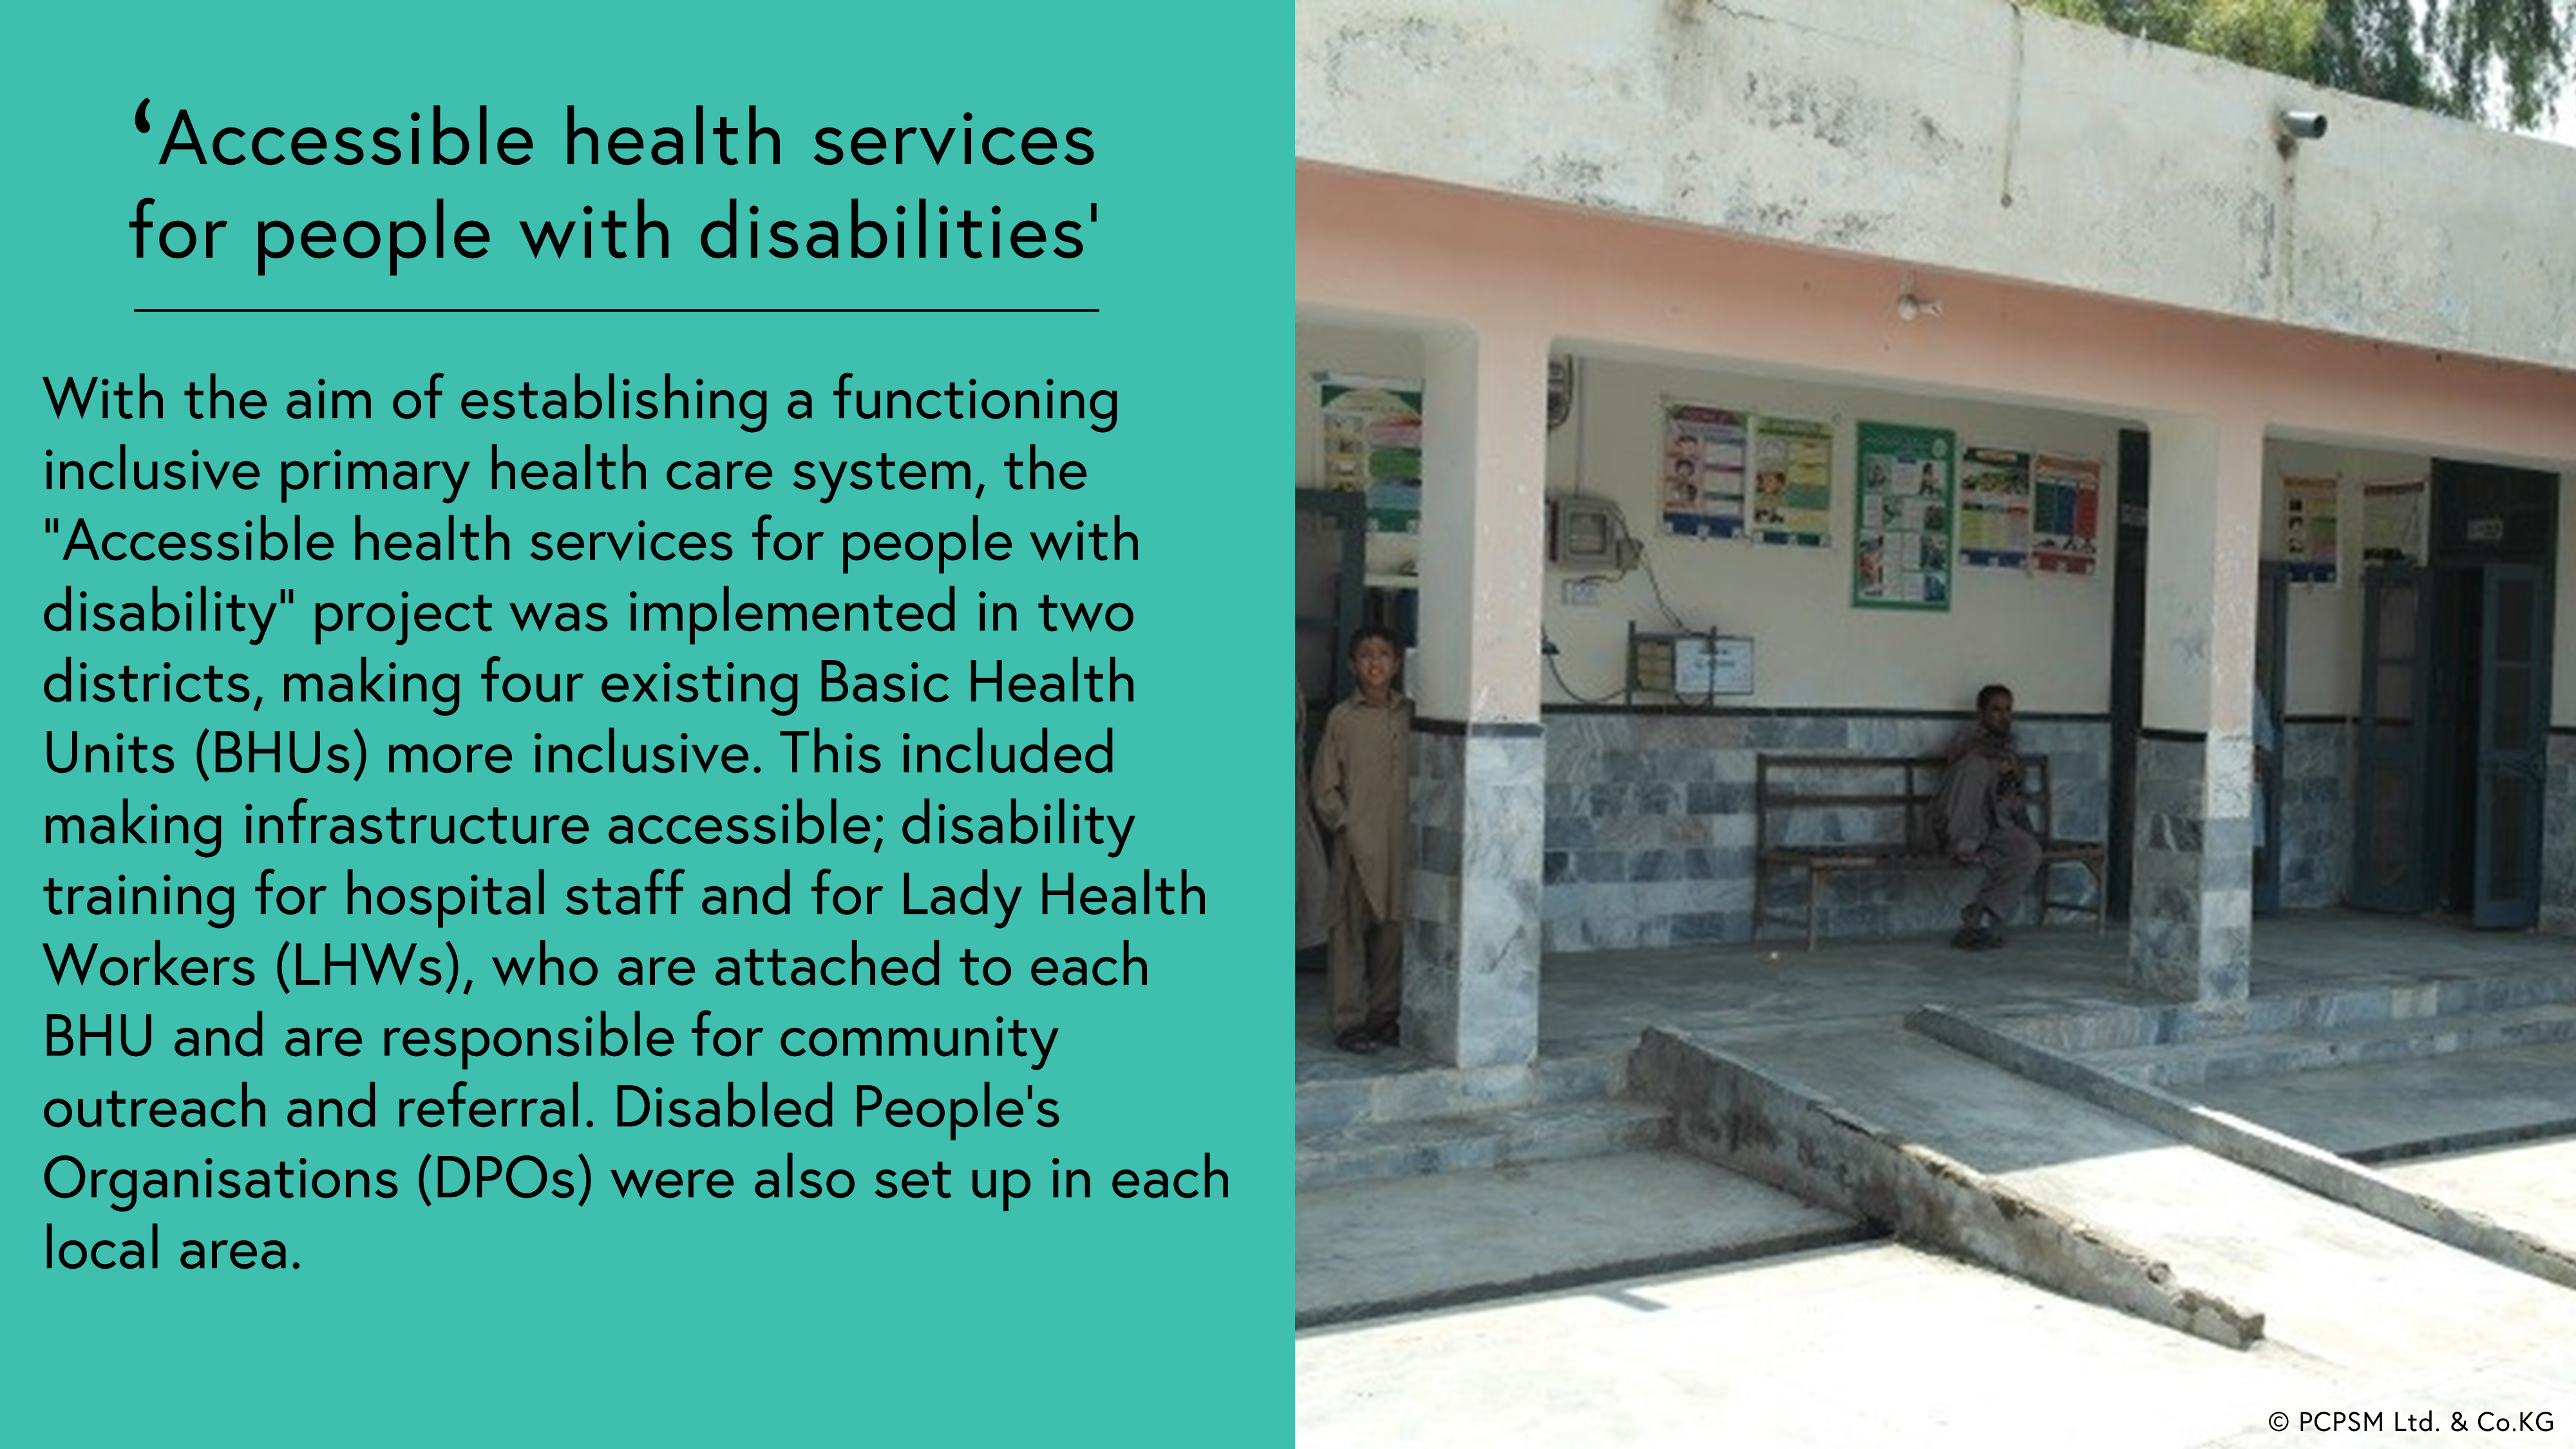 """Accessible health services for people with disabilities: With the aim of establishing a functioning inclusive primary health care system, the """"Accessible health services for people with disability"""" project was implemented in two districts, making four existing Basic Health Units (BHUs) more inclusive. This included making infrastructure accessible; disability training for hospital staff and for Lady Health Workers (LHWs), who are attached to each BHU and are responsible for community outreach and referral. Disabled People's Organisations (DPOs) were also set up in each local area. Photo shows front entrance of a Basic Health Unit with a concrete ramp entrance."""